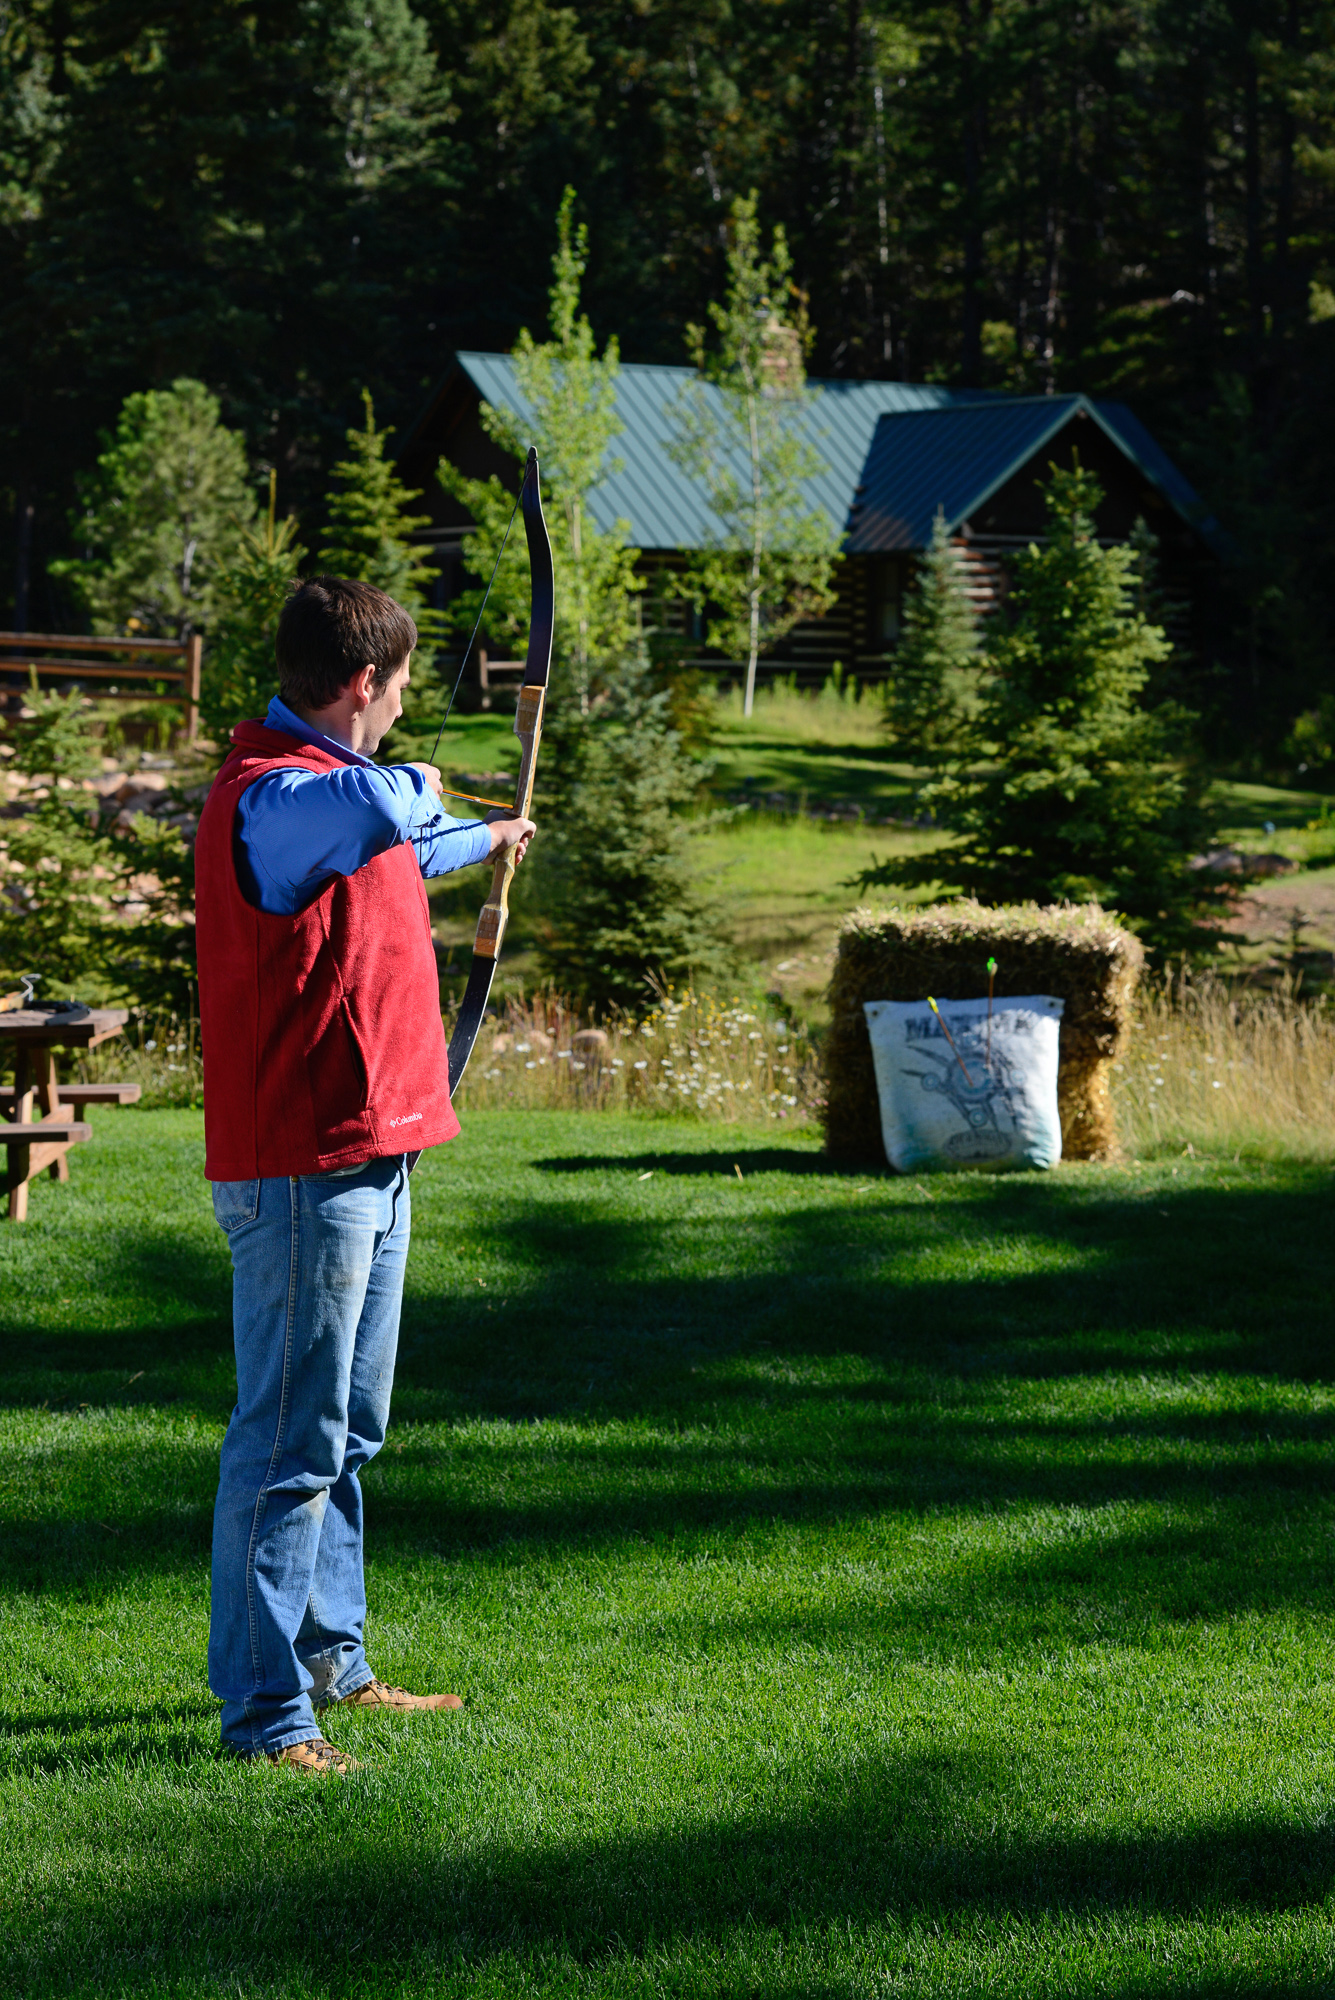 Enjoy archery during your glamping vacation in Colorado